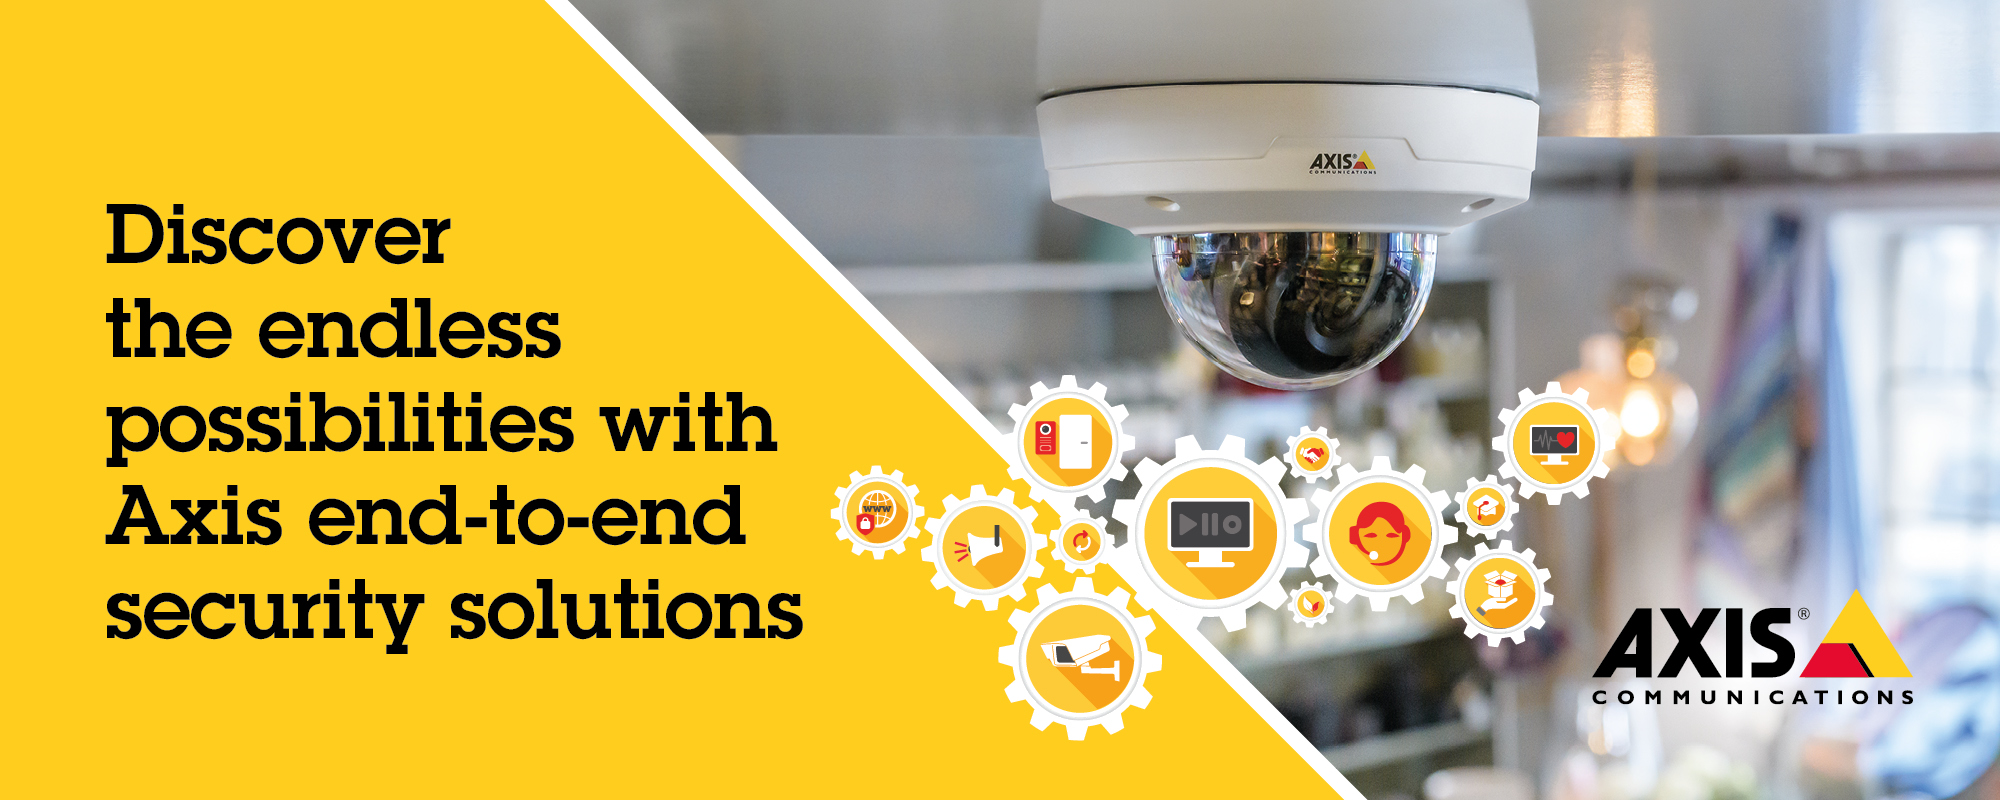 Axis CCTV end-to-end Surveillance Solutions